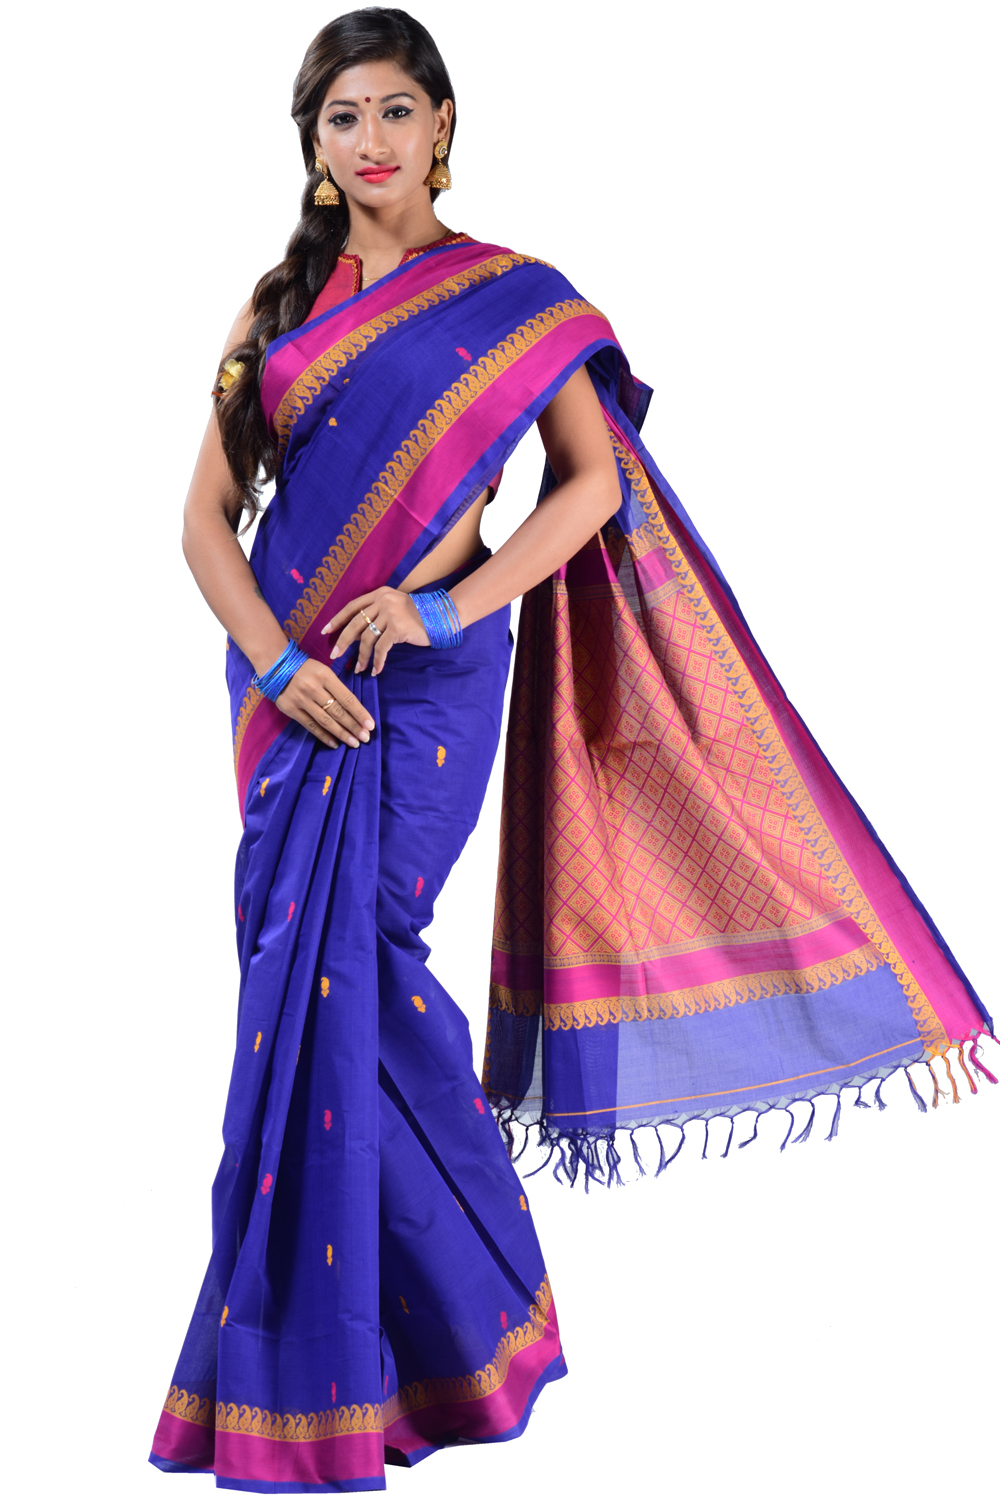 Cotton saree in violet handloom with traditional mango motifs